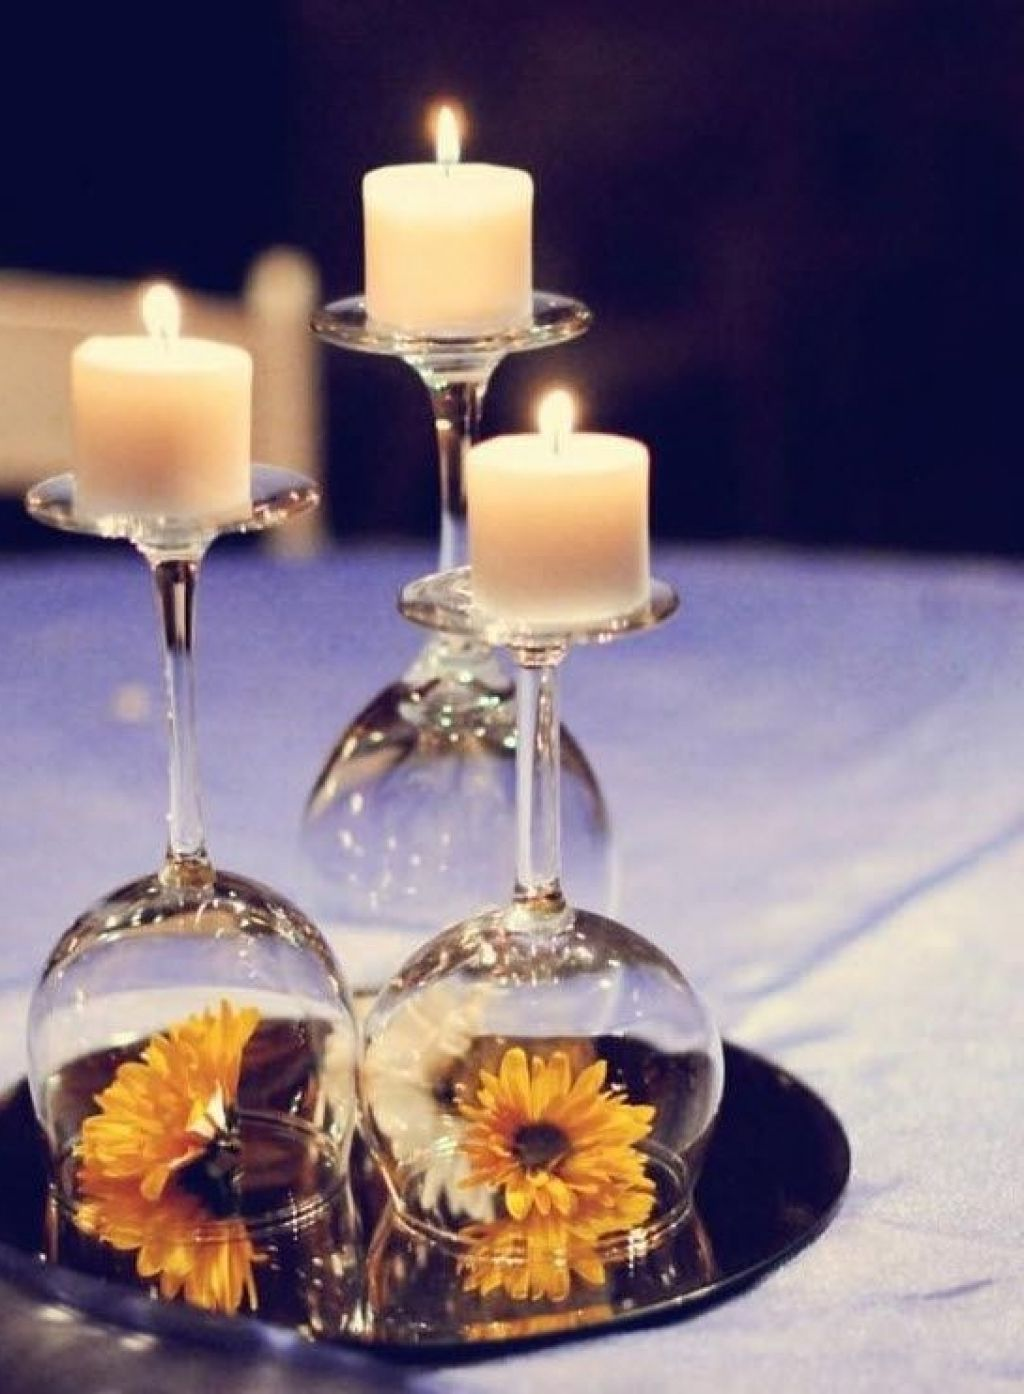 Uncategorized wedding style decor small home garden wedding ideas youtube - 12 Wedding Centerpiece Ideas From Pinterest Wine Glass Wedding Easy Cheap Wedding Decorations